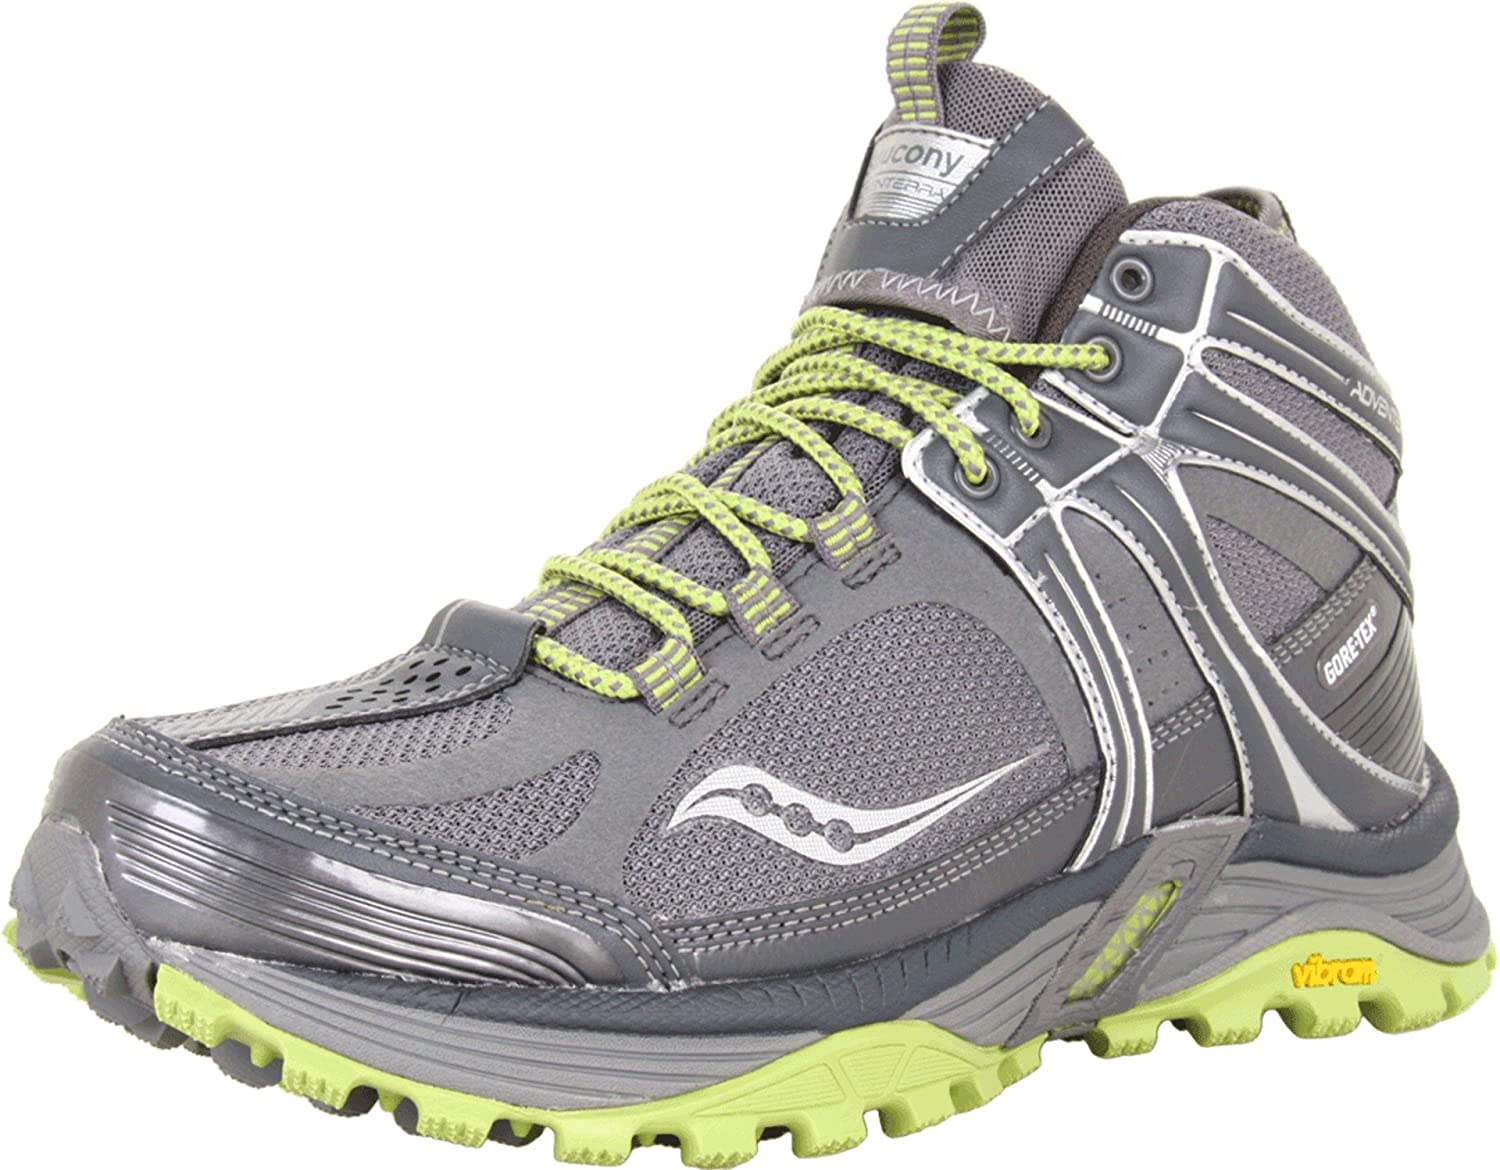 Saucony Hiking Shoes